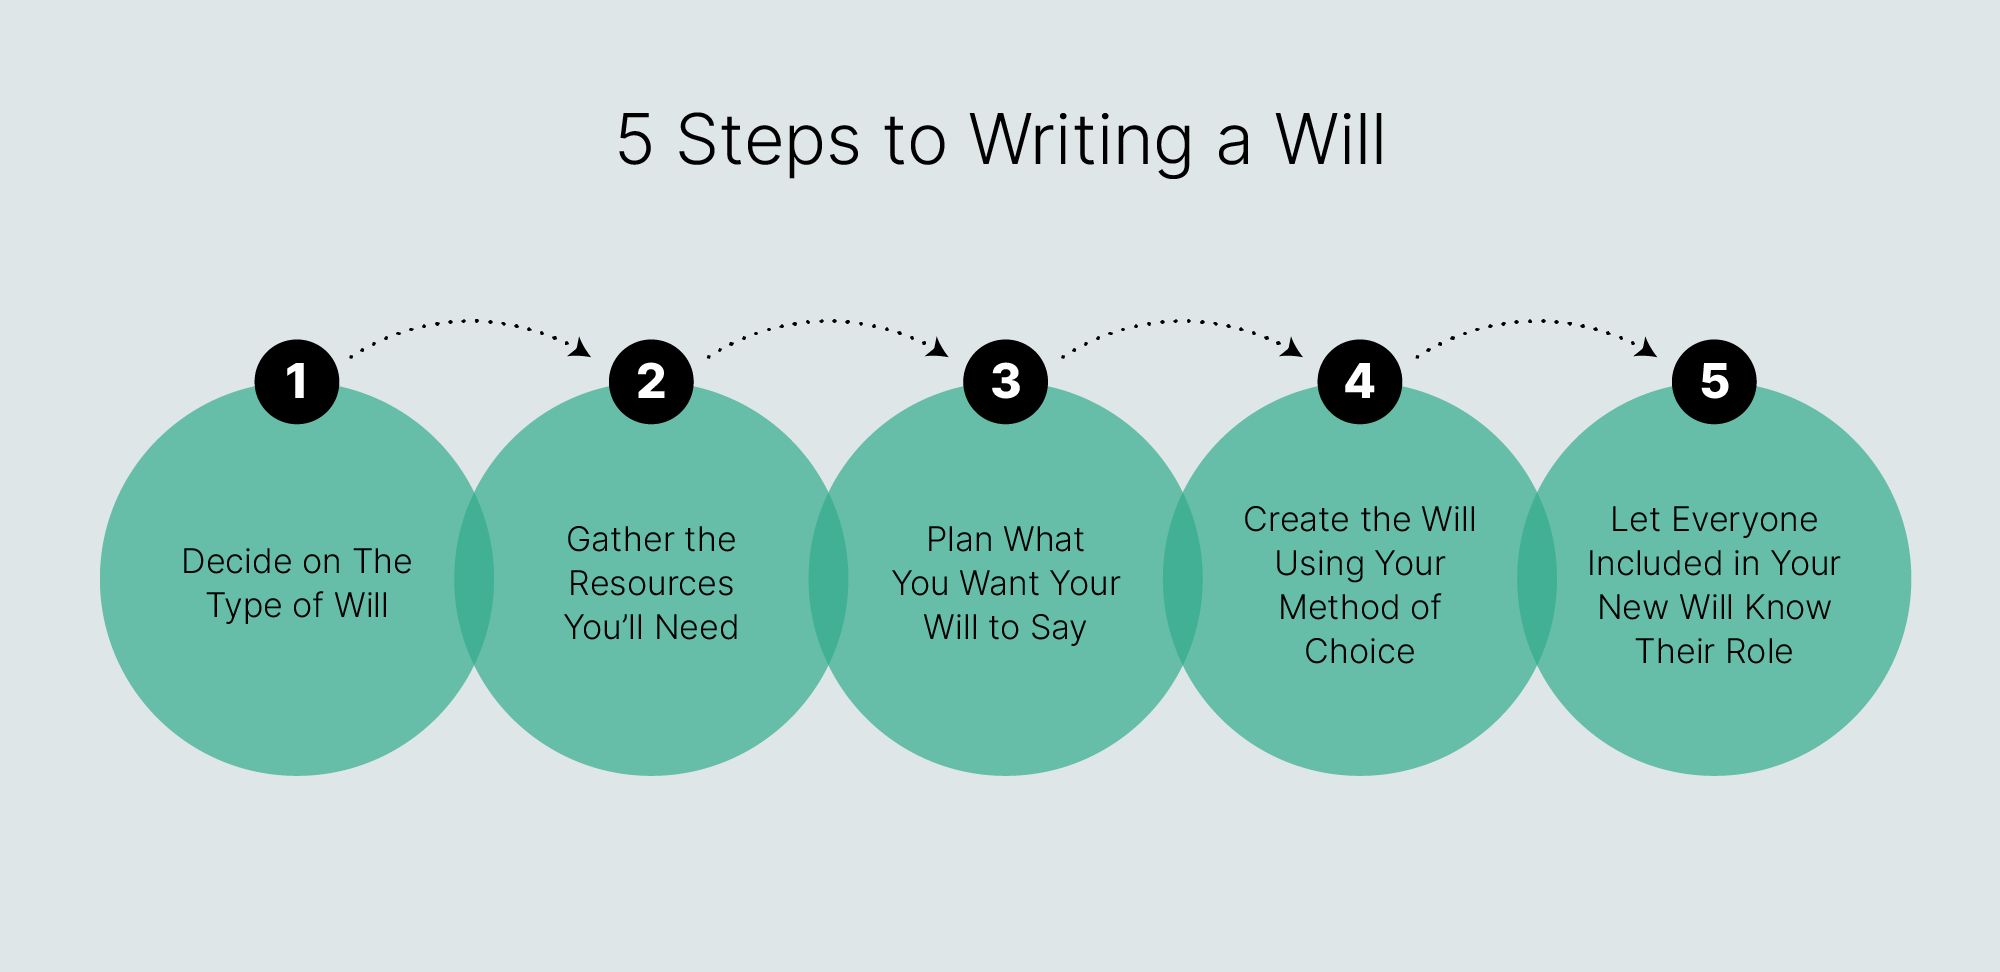 Let Everyone Included in Your New Will Know Their Role